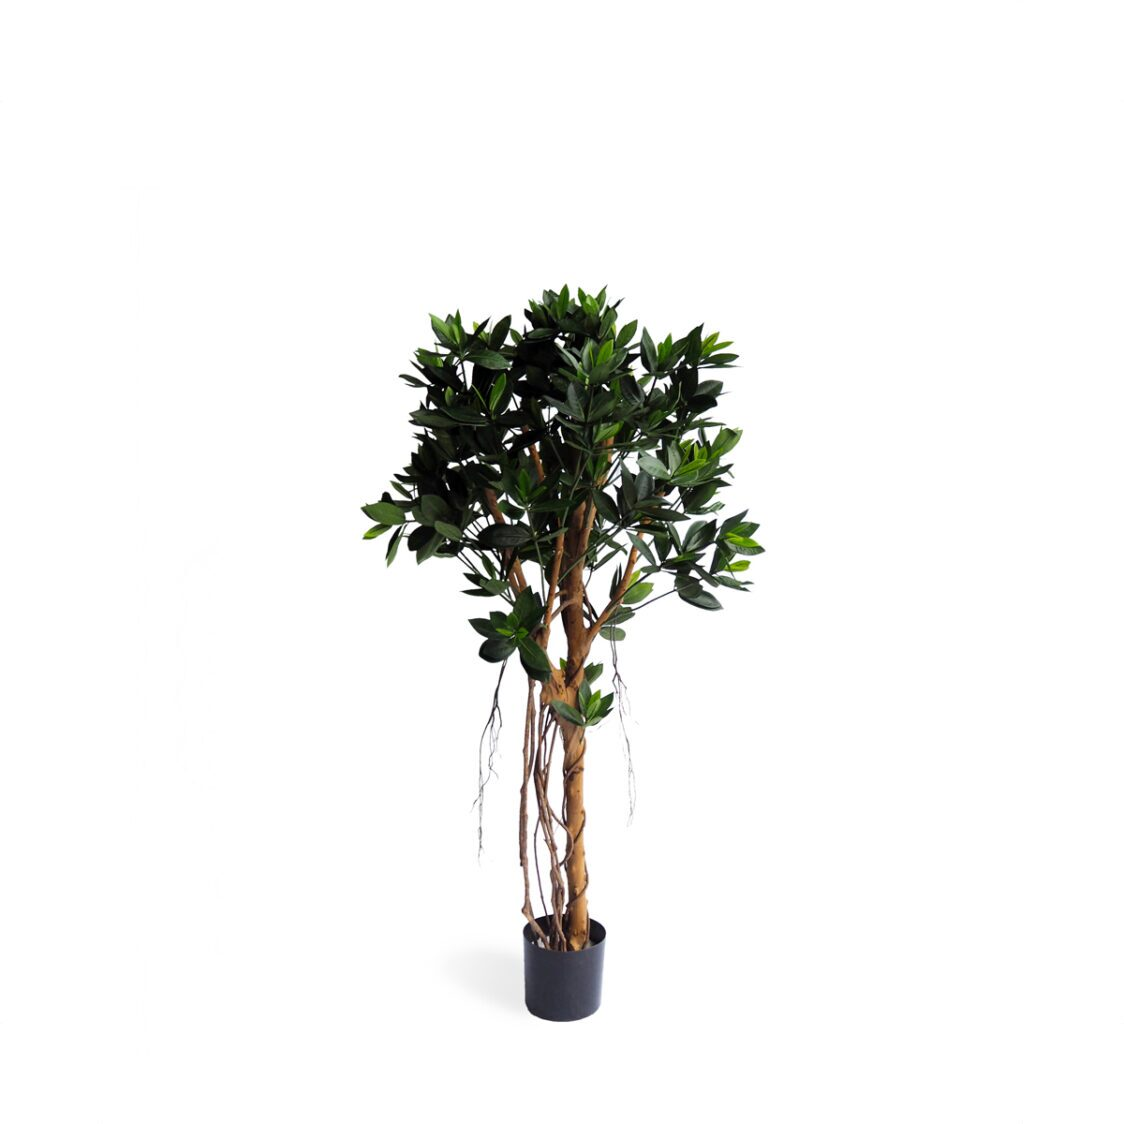 Pollyanna Potted Sweet Link Ball Tree